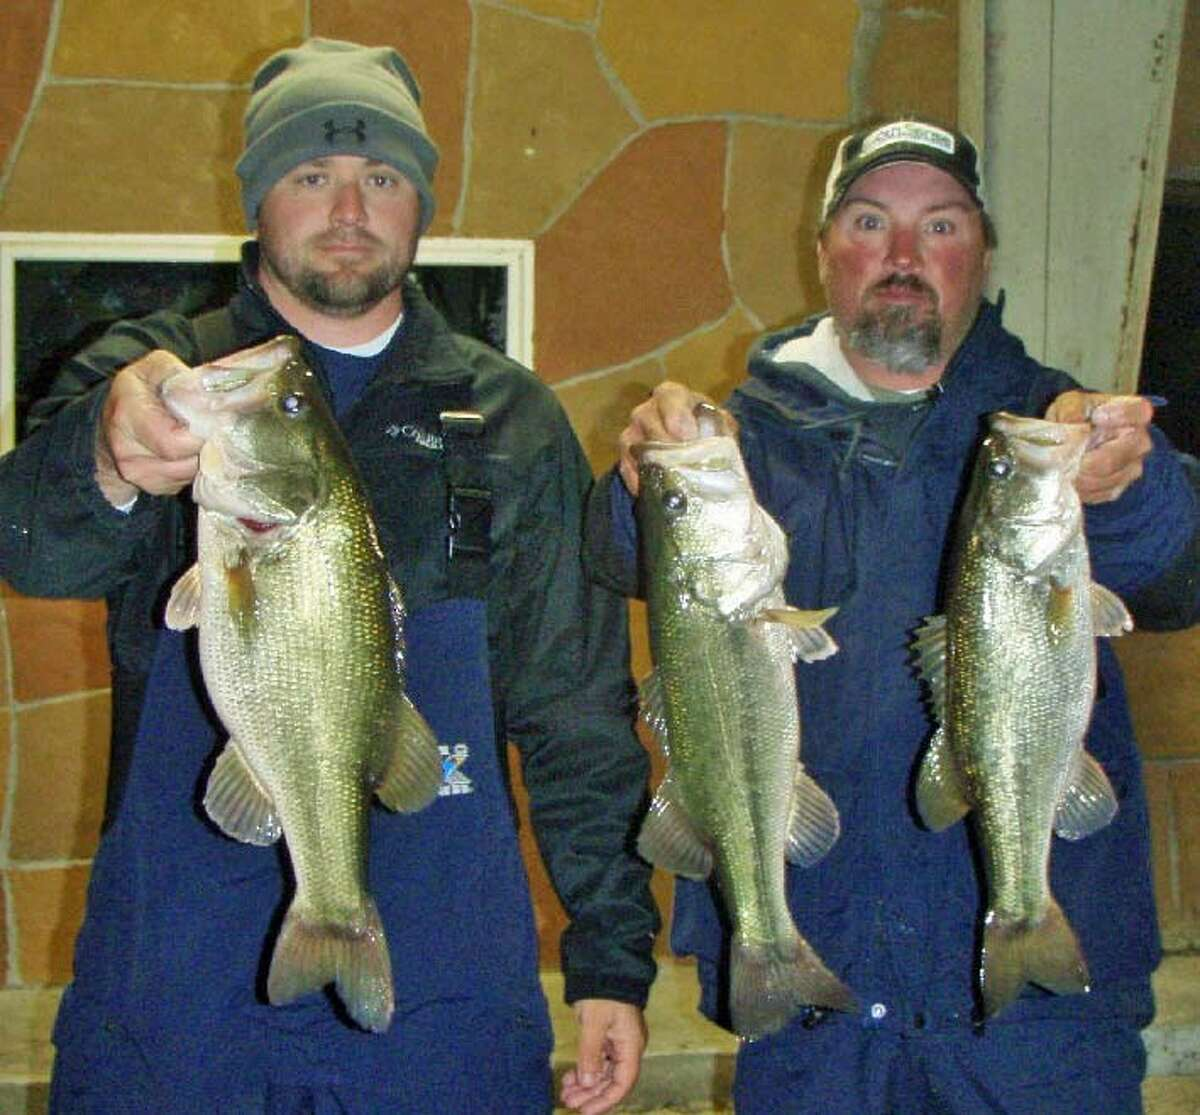 Steve Lee and Jason McClure won the Conroe Bass Tuesday Night Tournament on Nov. 27 with a stringer weighing 10.88 pounds.